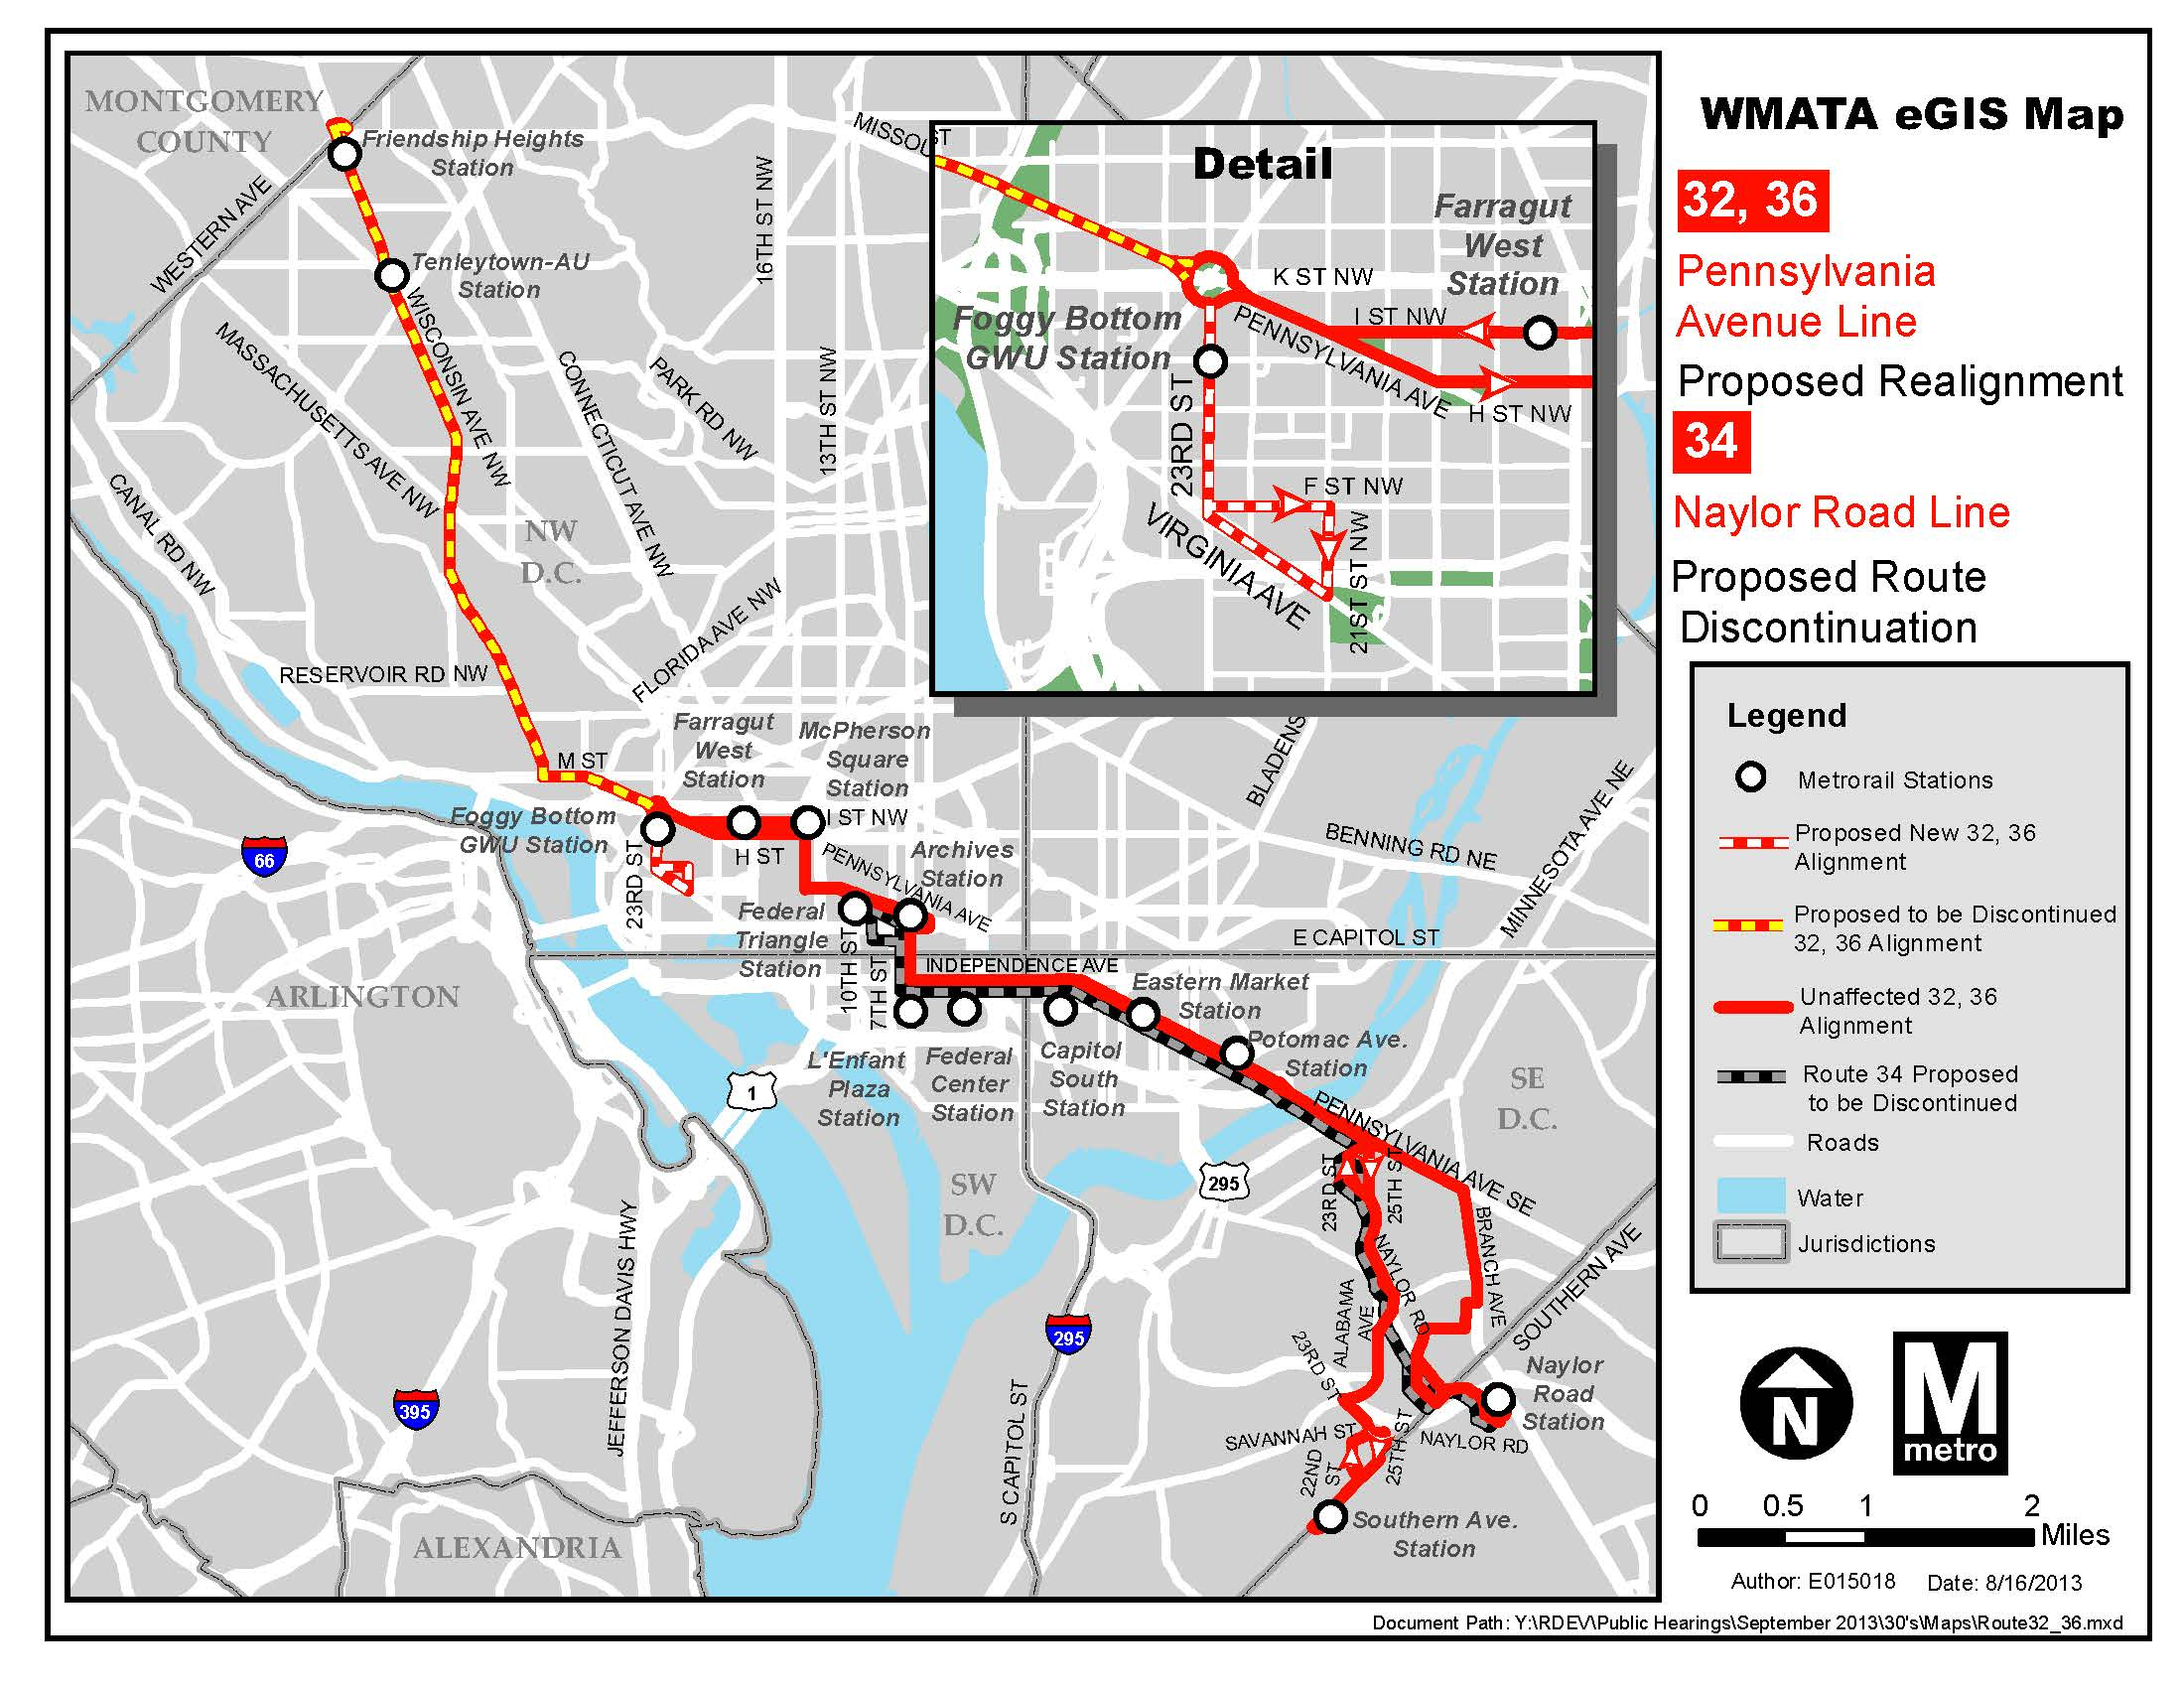 PlanItMetro » Improving bus service on the 30s line (Routes ... on map of dc restaurants, map of dc subway, map of dc highways, map of dc bike paths, map of dc fire stations, map of dc schools, map of dc train, map of dc museums, map of dc bars, map of dc hospitals, map of dc buildings, map of dc airports, map of dc bridges, map of dc metro stations,